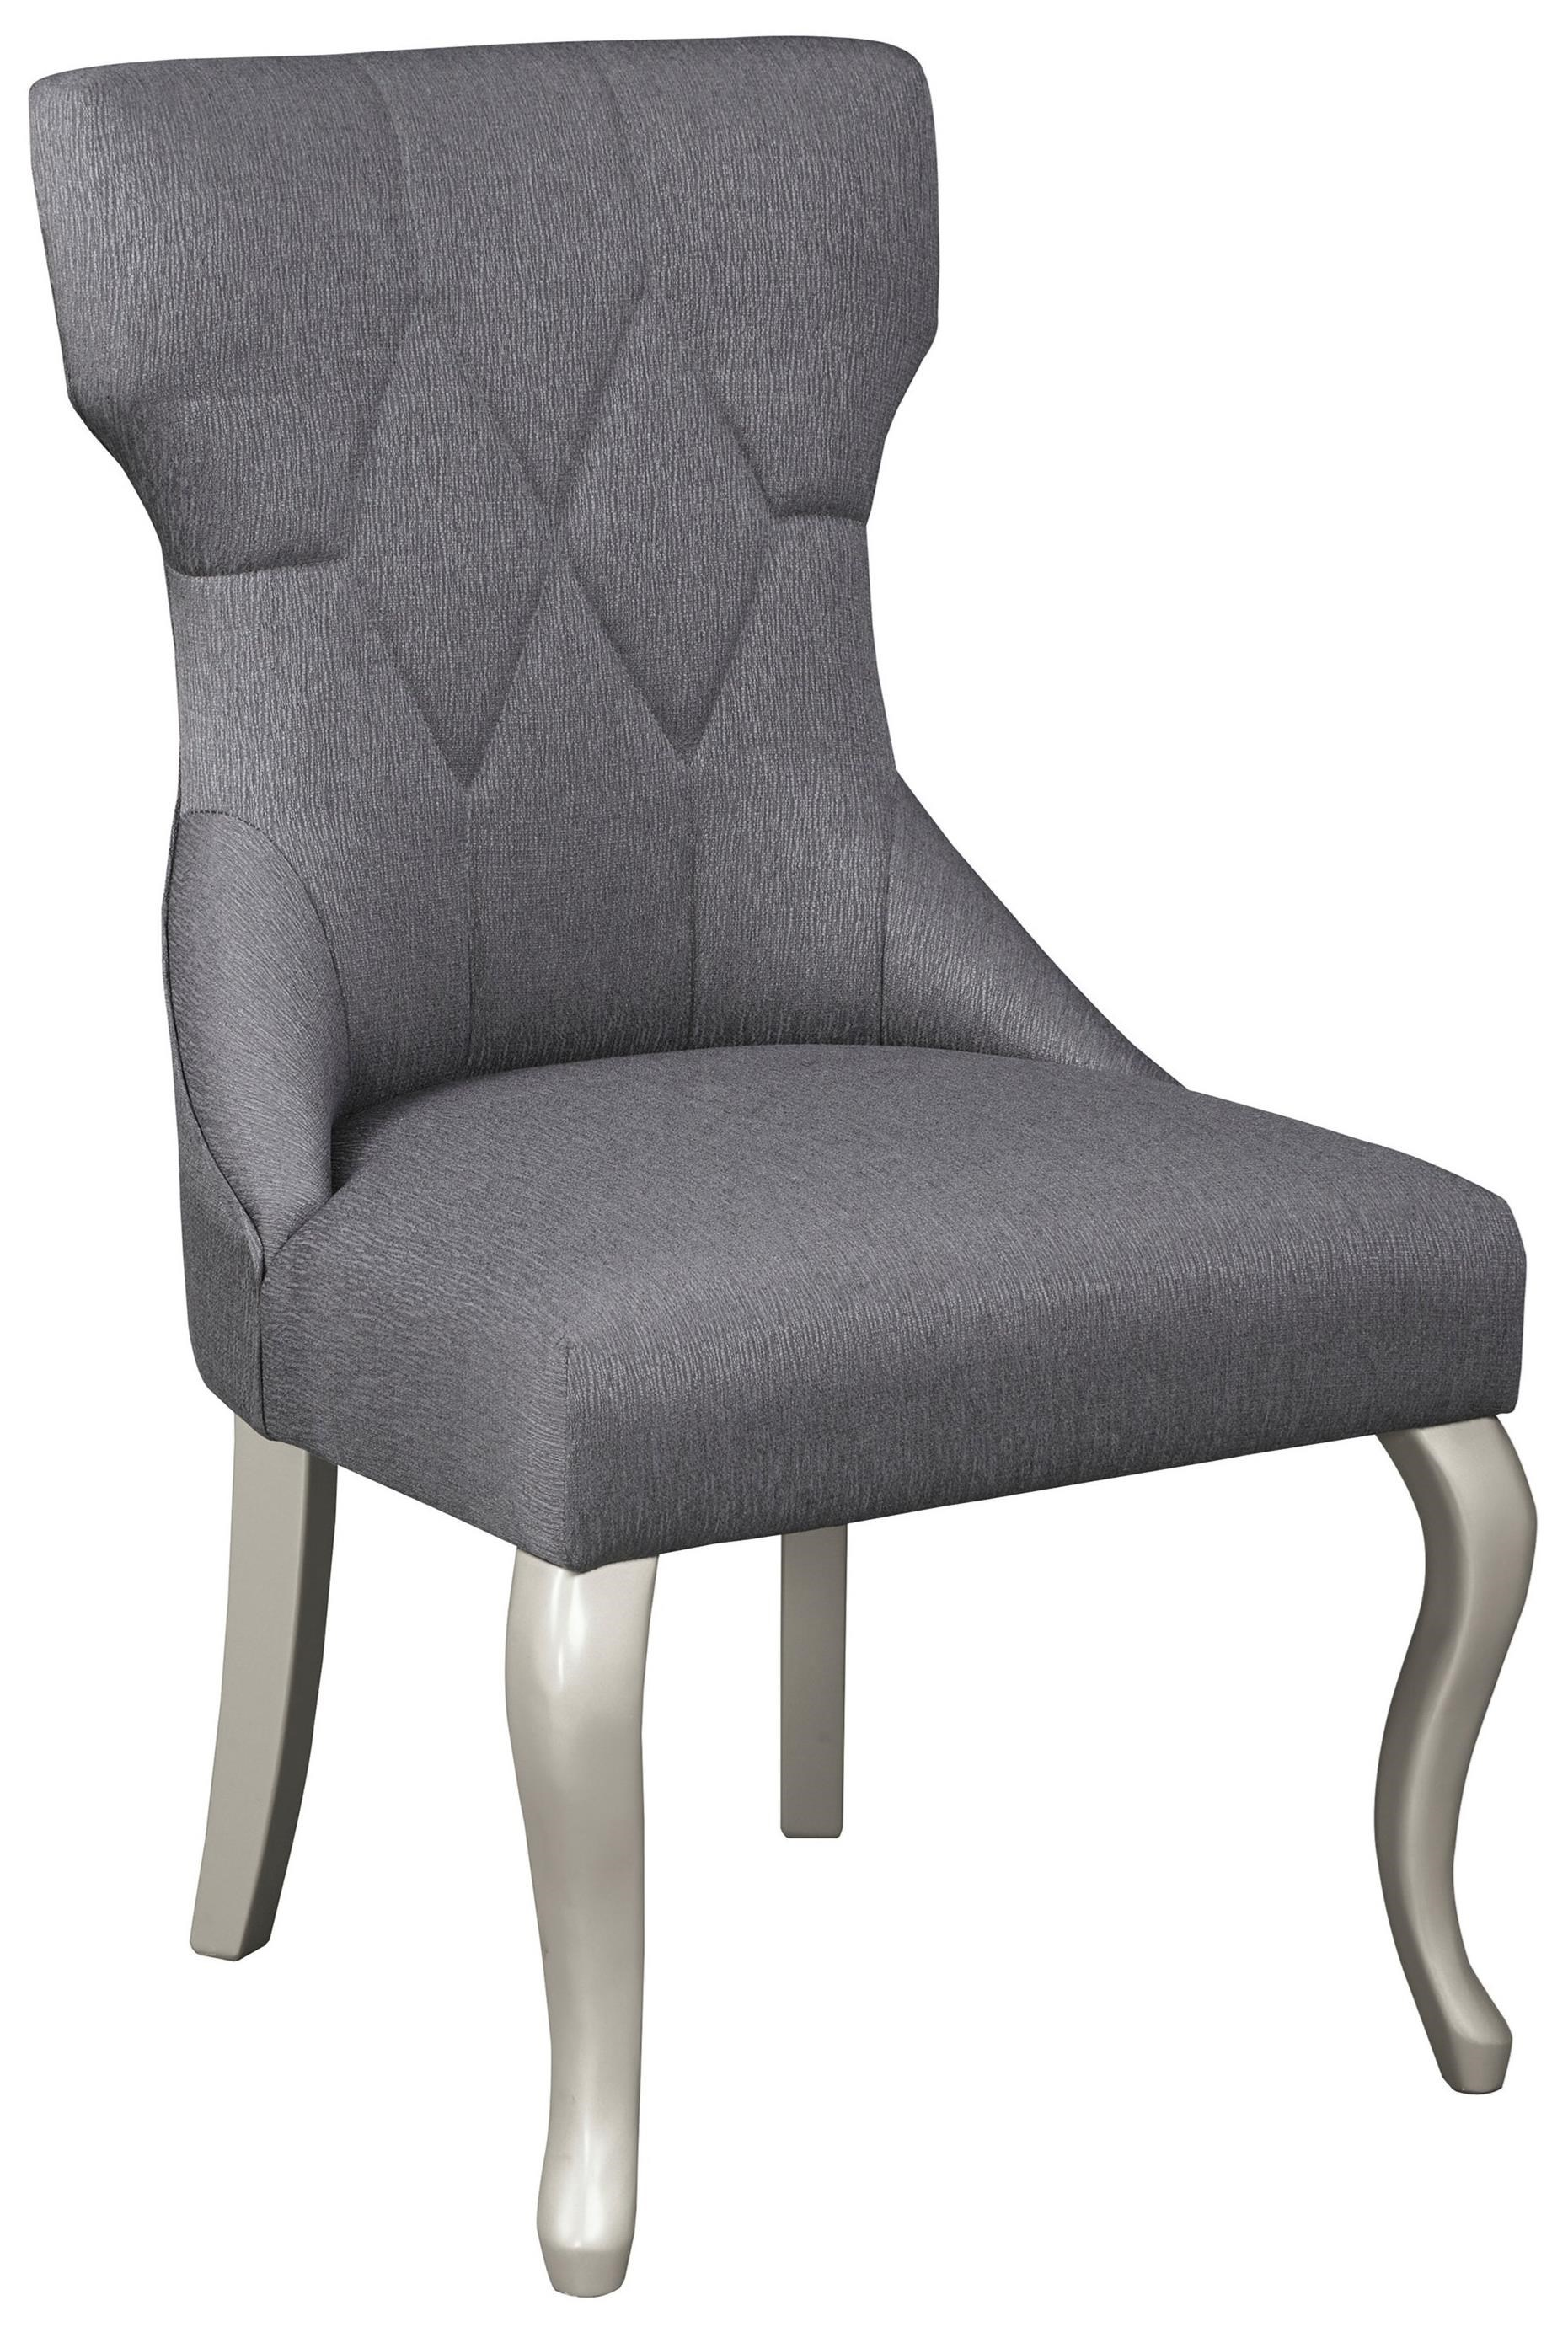 Ashley Signature Design Coralayne D650 01 Dining Upholstered Side Chair  With Silver Finish Legs | Dunk U0026 Bright Furniture | Dining Side Chairs